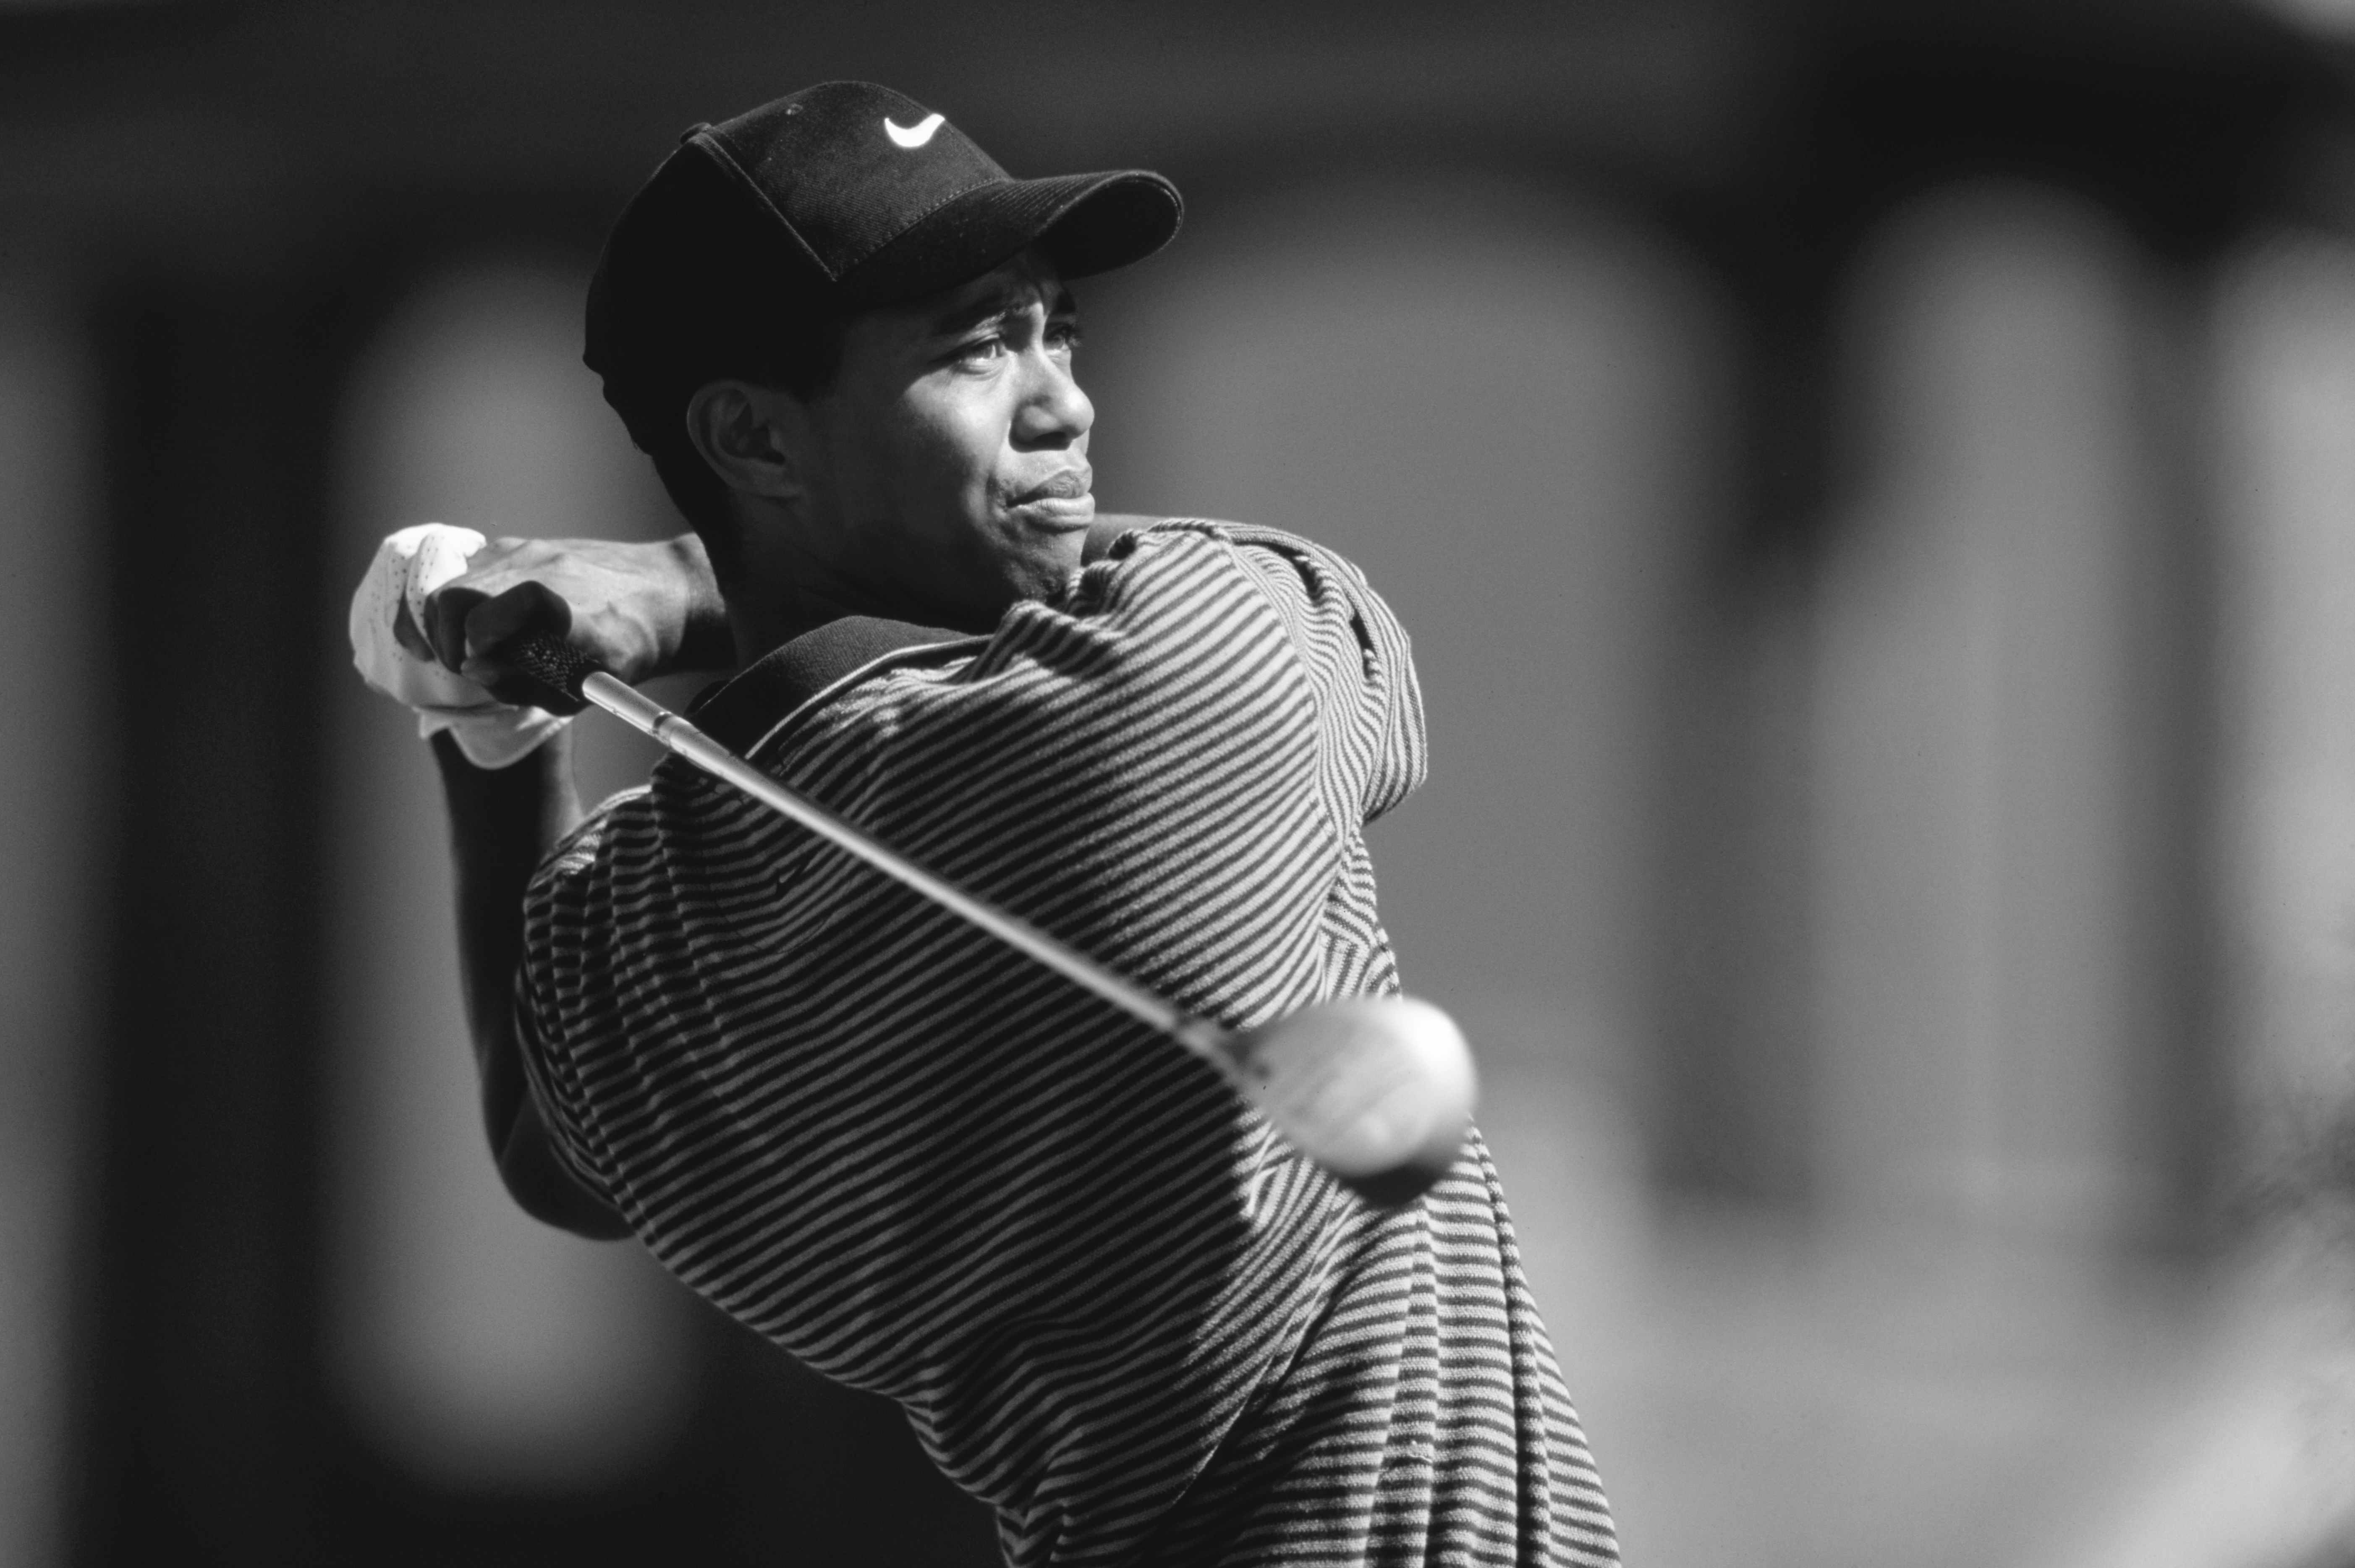 Tiger Woods' life gets explored through a frustratingly Freudian lens in HBO's new doc